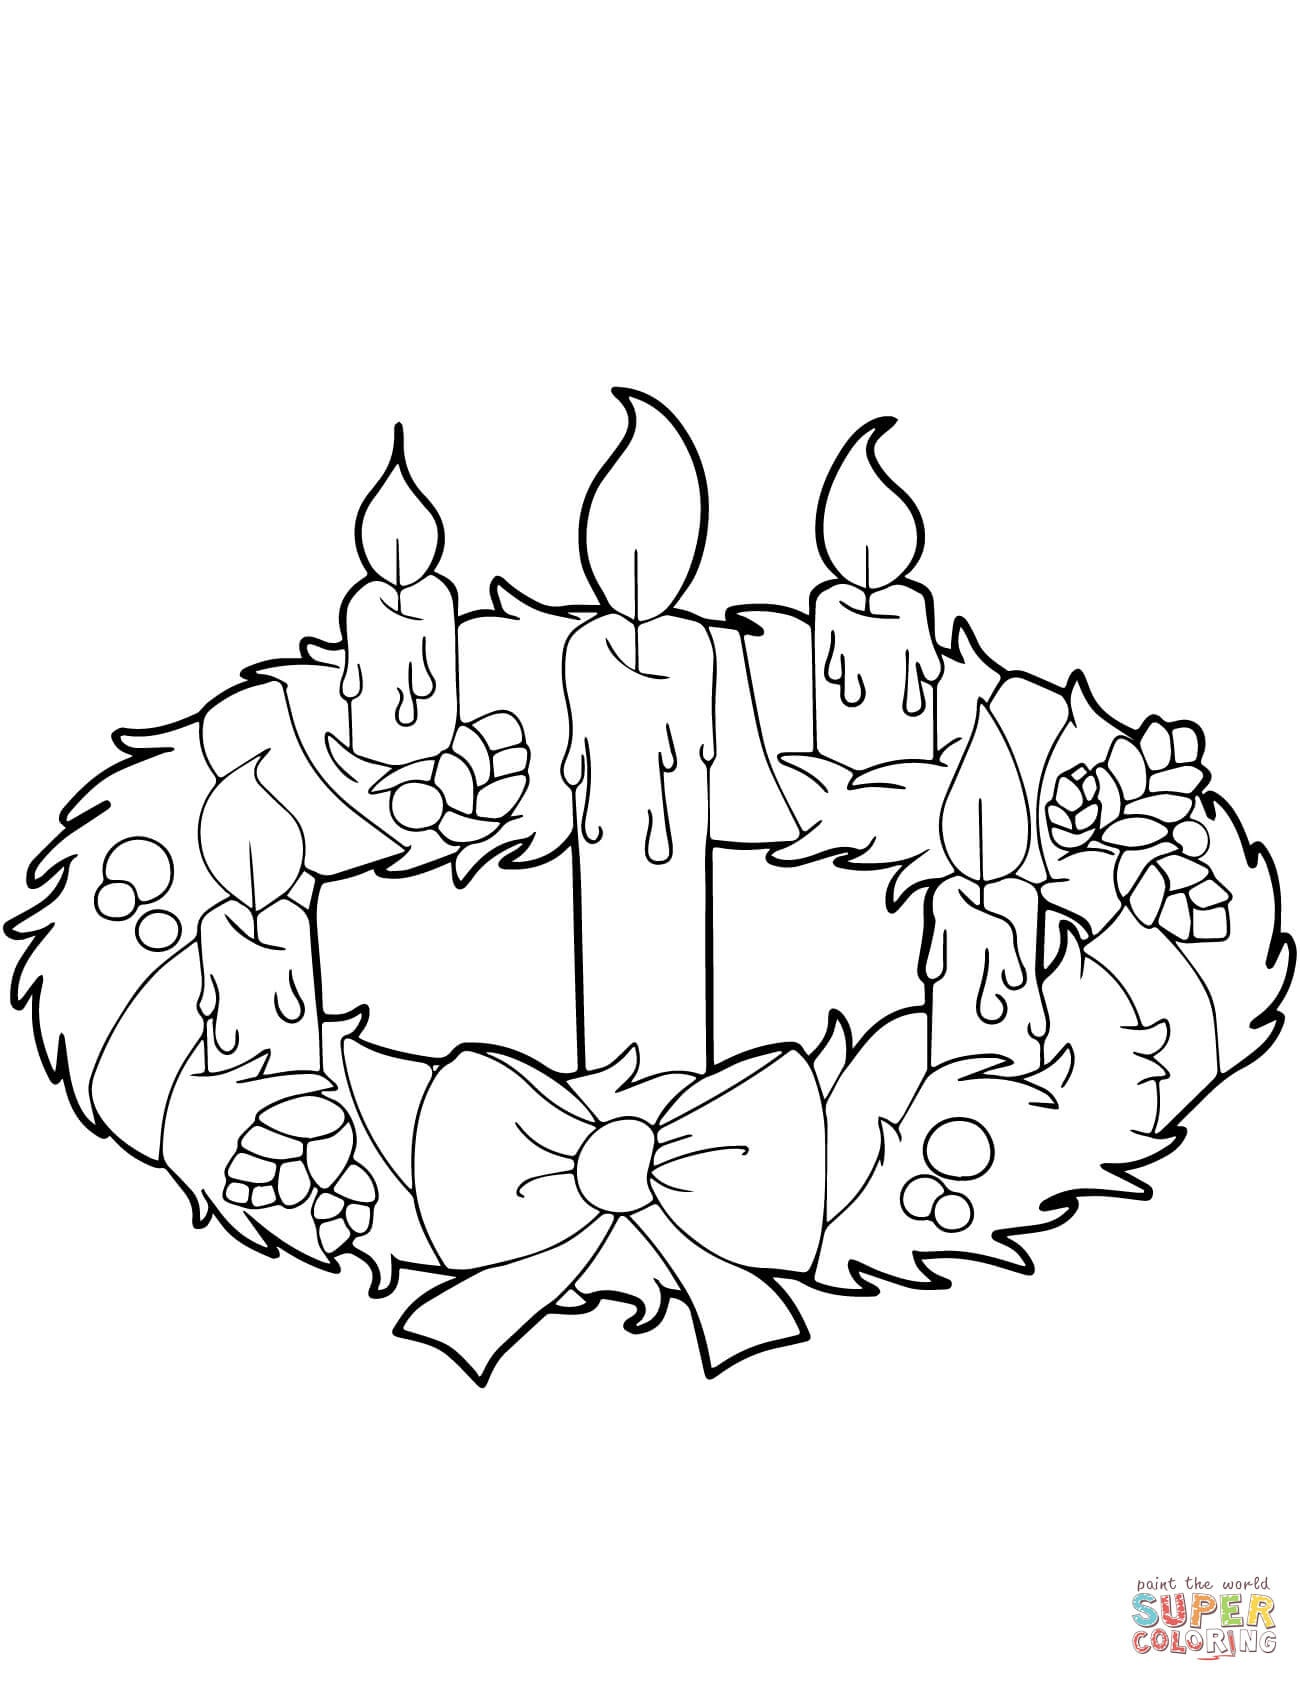 Advent Wreath And Candles Coloring Page   Free Printable Coloring Pages - Free Printable Advent Wreath